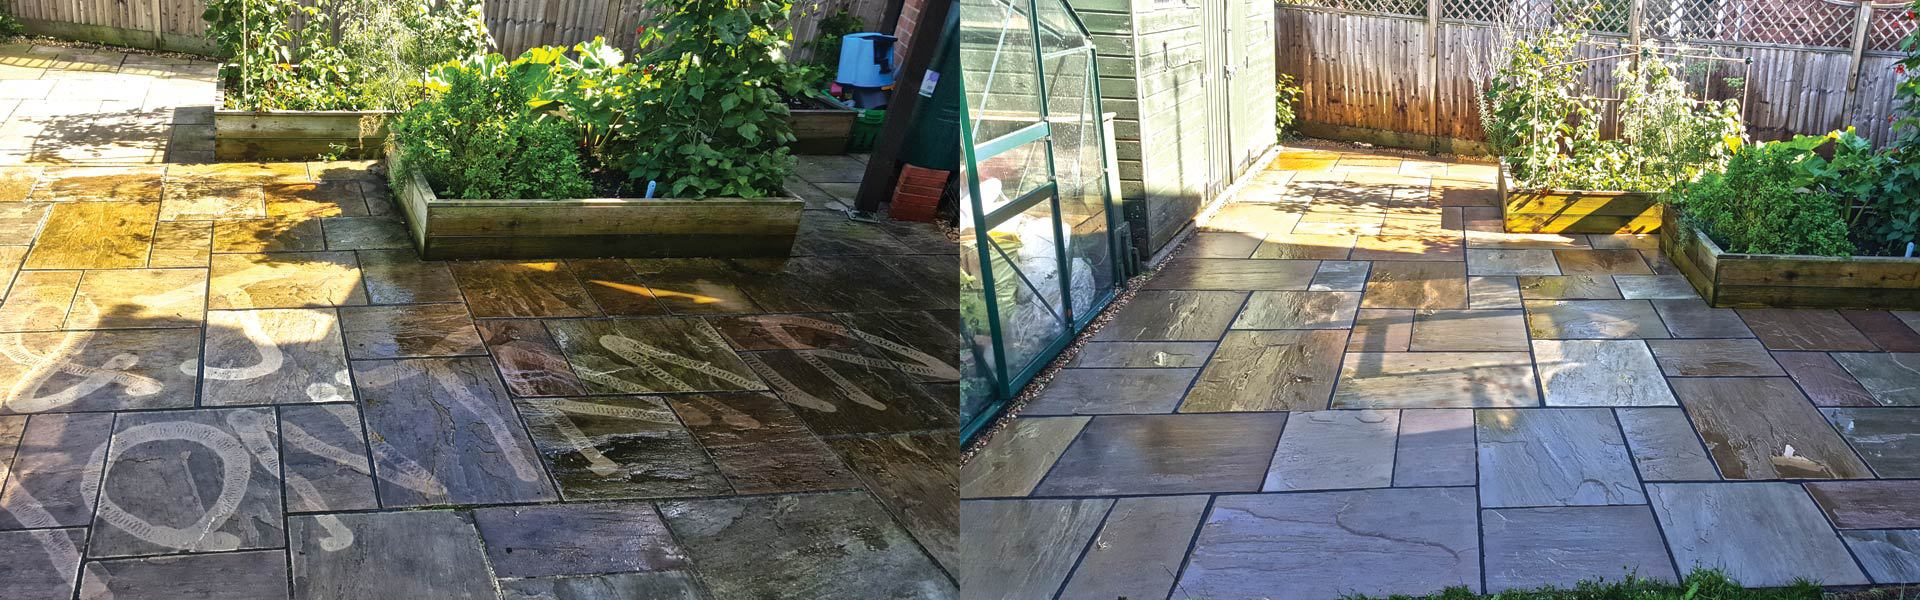 image of a garden pressure washing